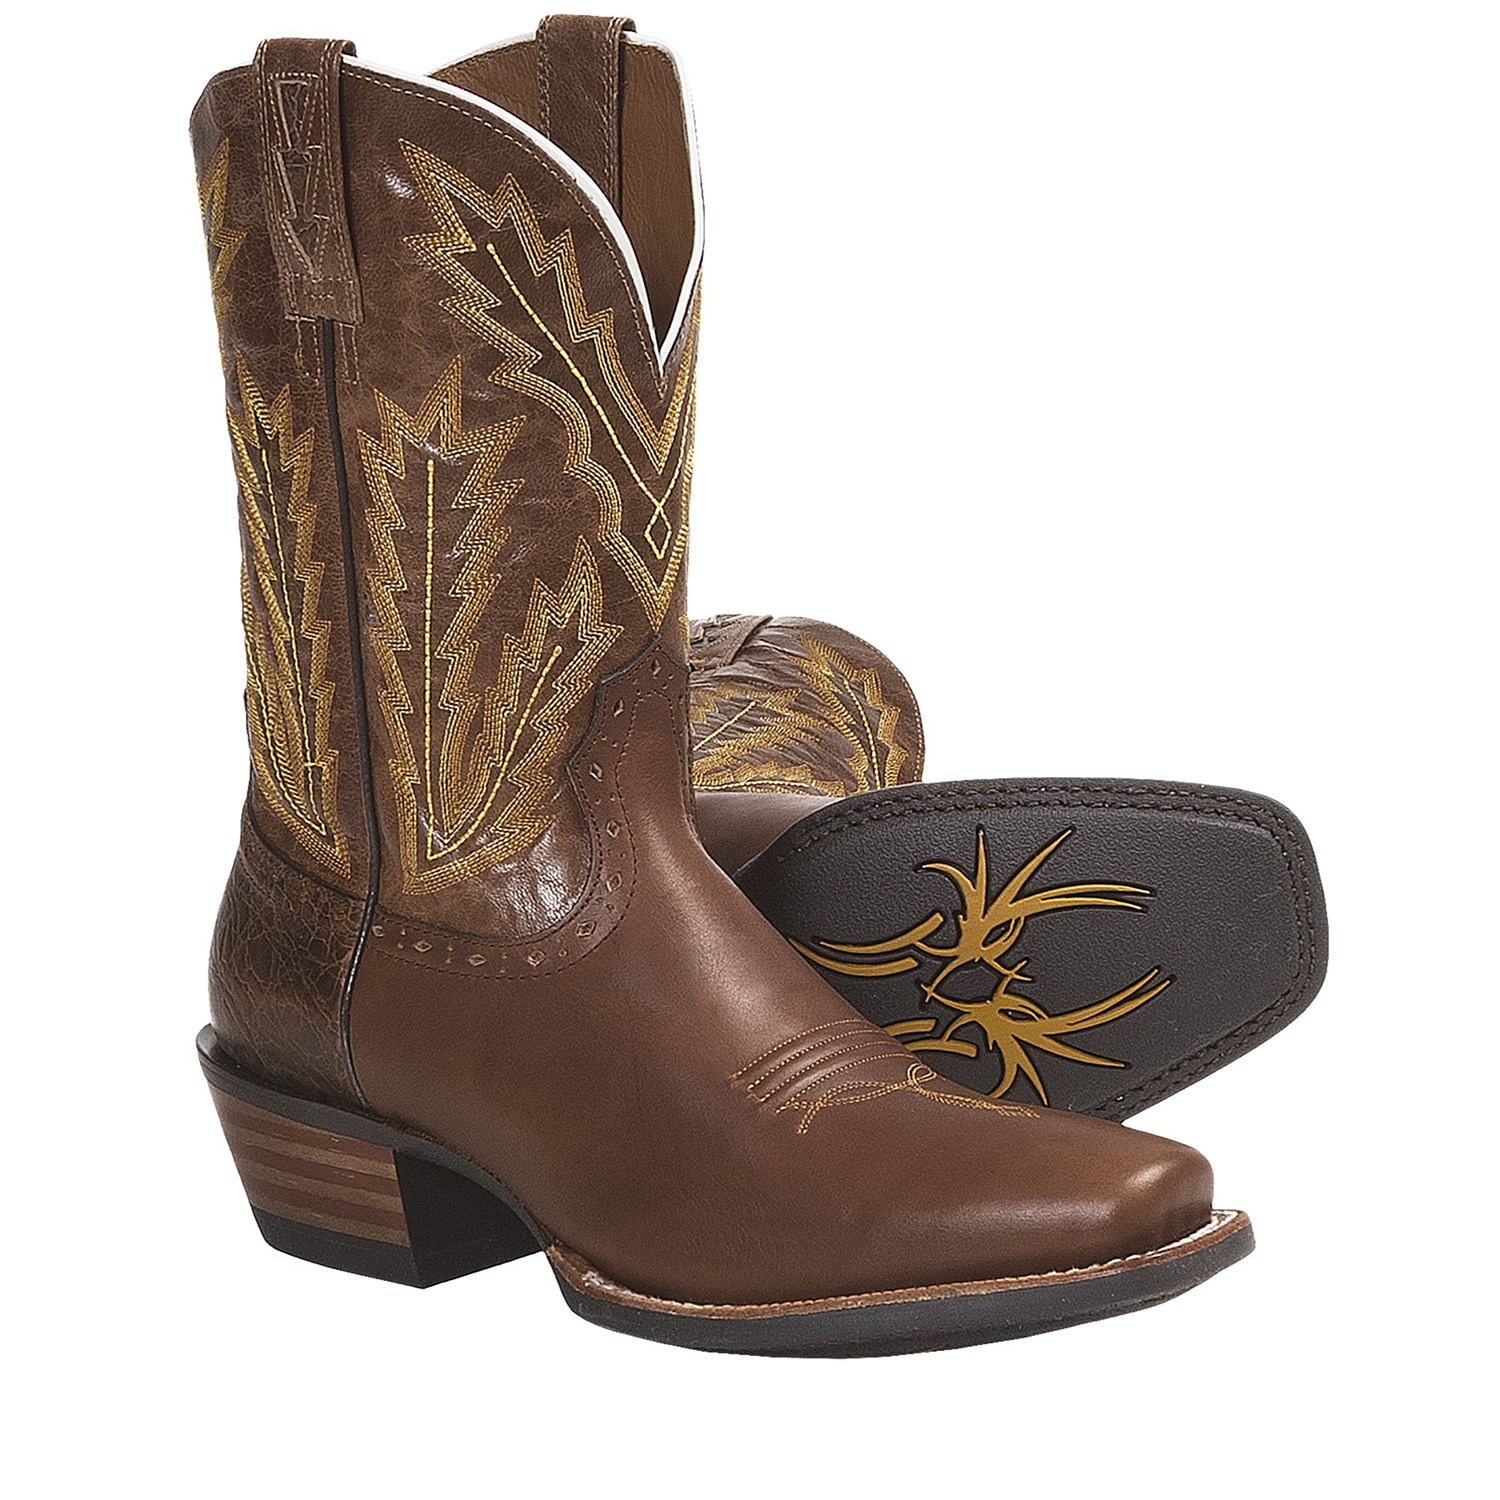 Ariat Cowgirl Boots On Sale S8wIHCPZ